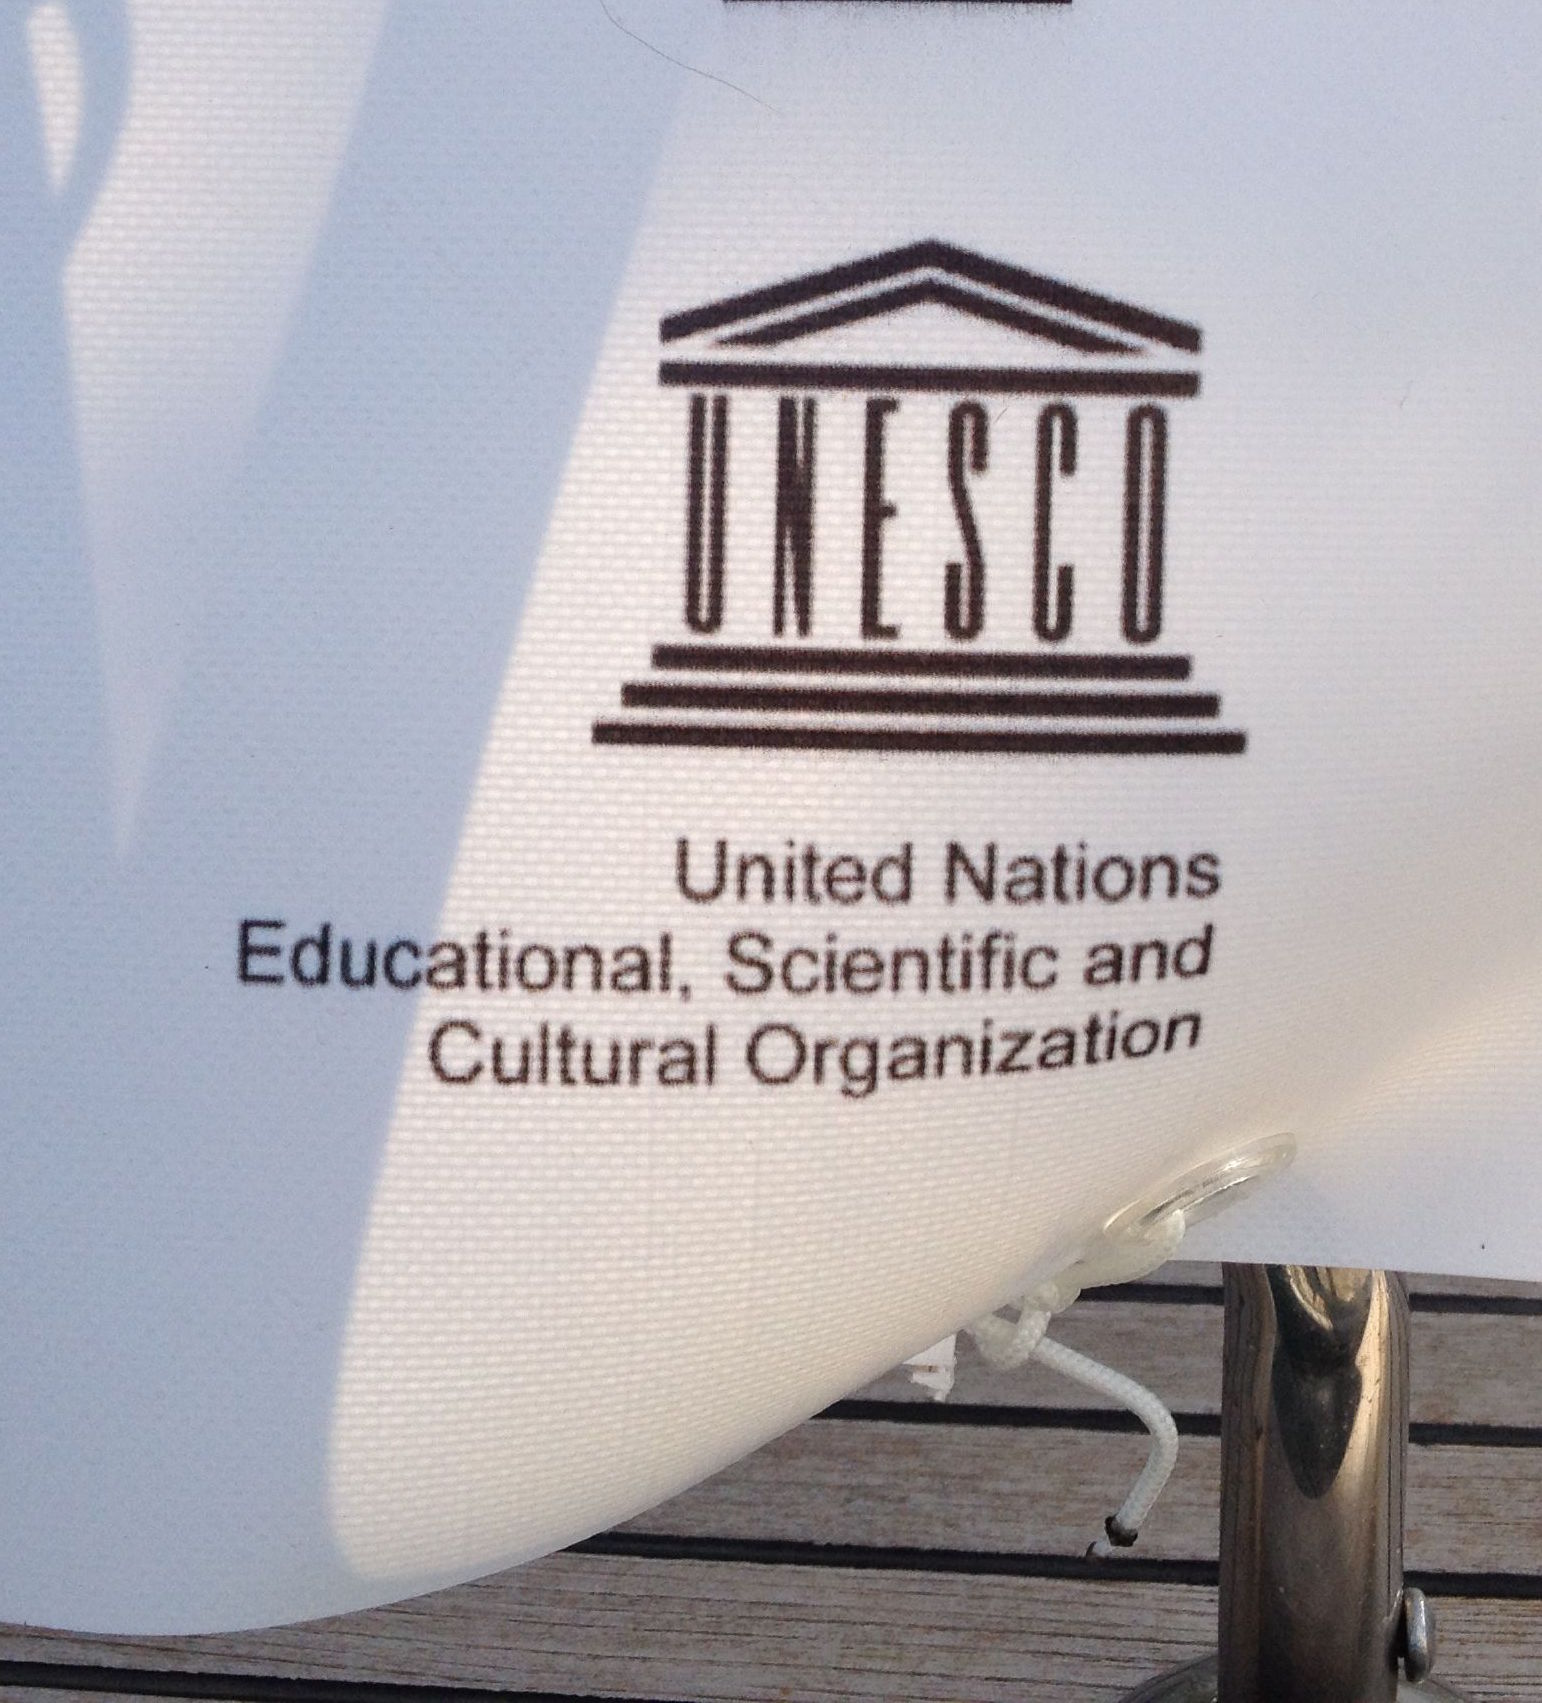 81-unesco-the-united-nations-educational-scientific-and-cultural-organization-partnered-with-the-bpo